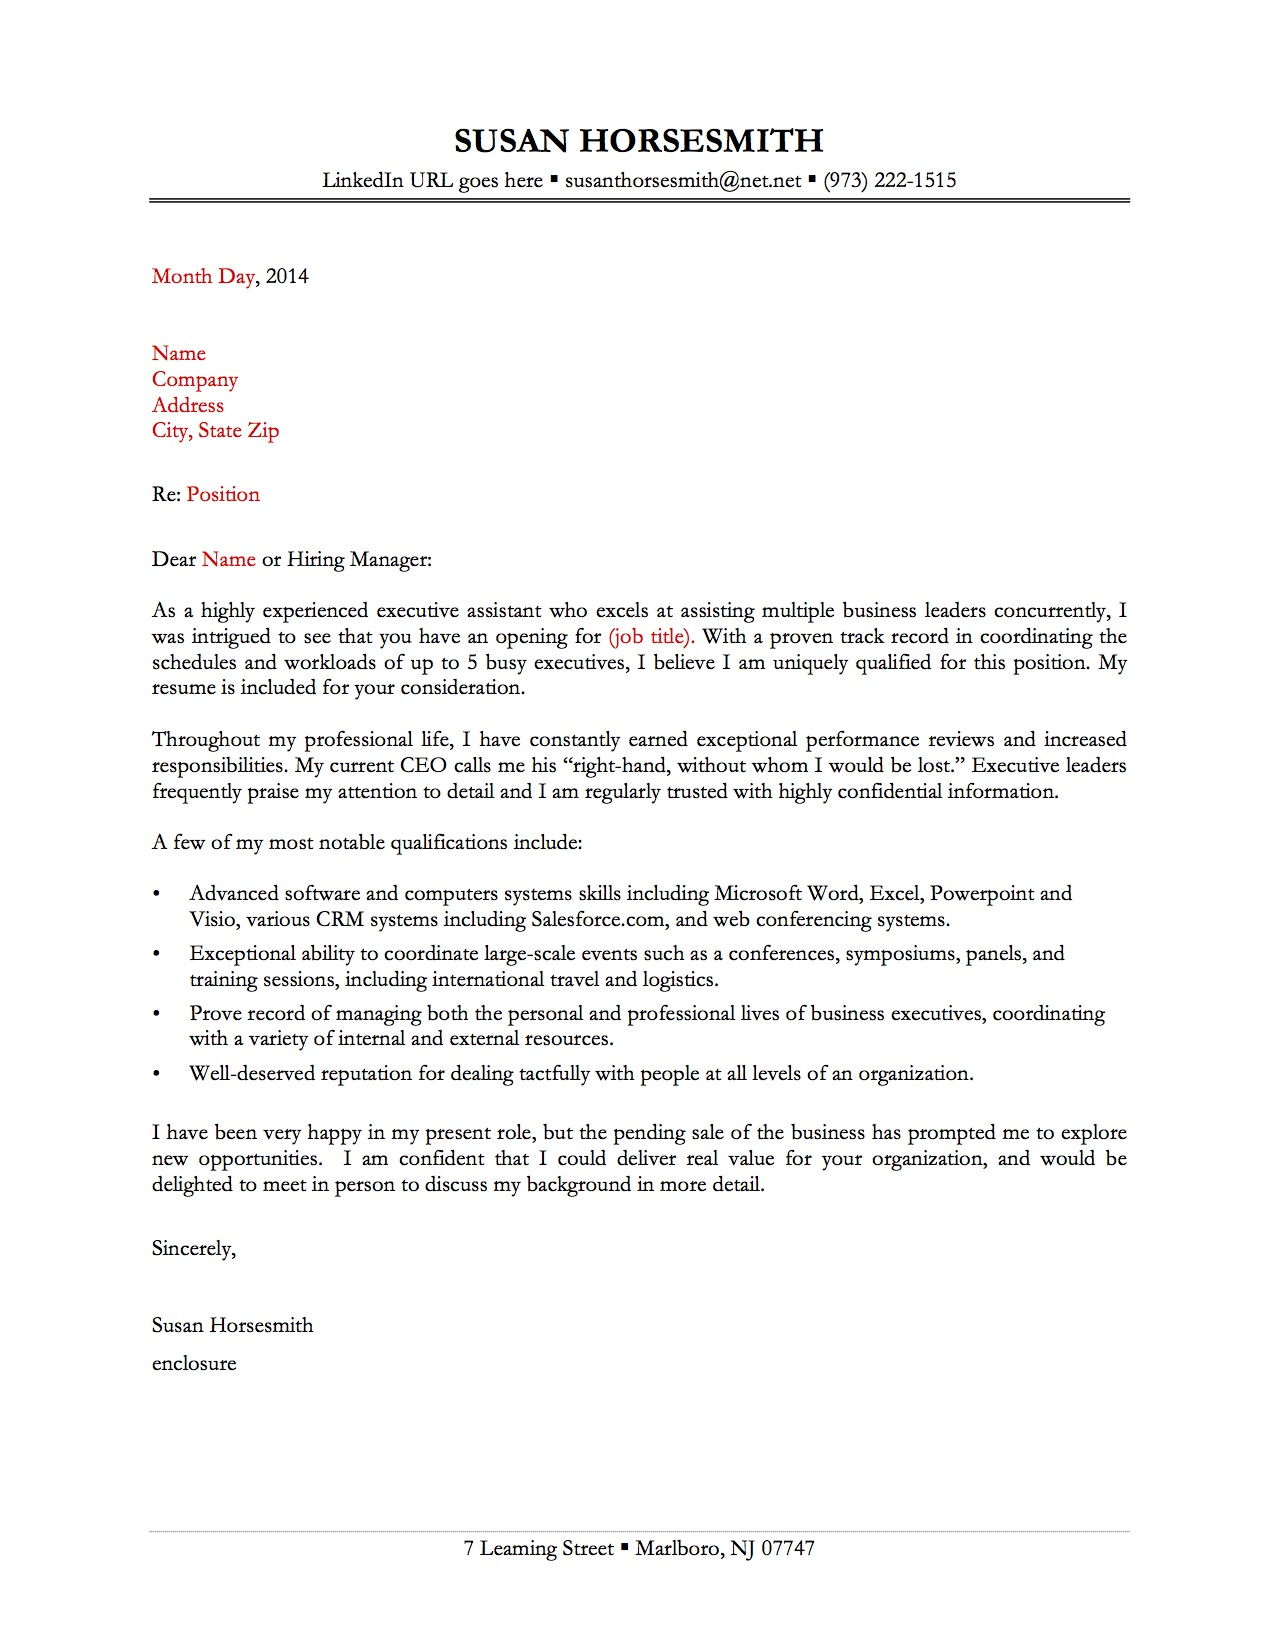 Sample Cover Letter 1  How To Write Resume Cover Letter Examples